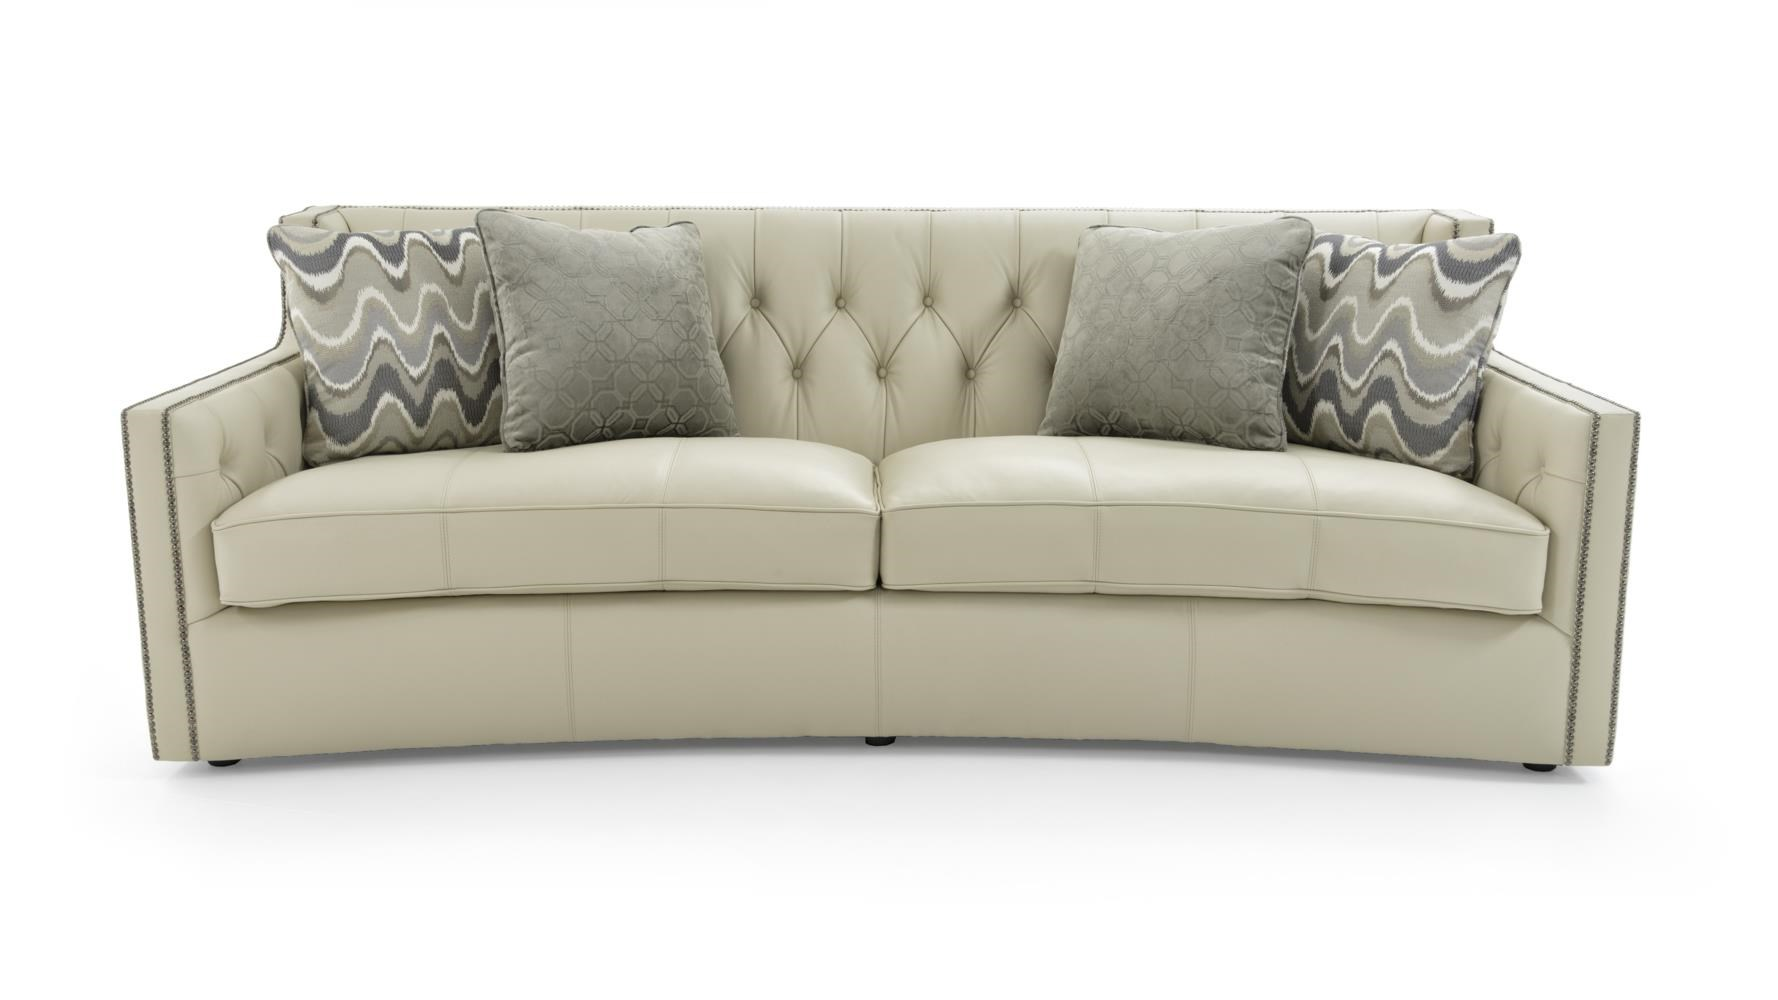 Bernhardt Candace 7277leo 206 200 Sofa With Transitional Elegance Baer 39 S Furniture Sofas